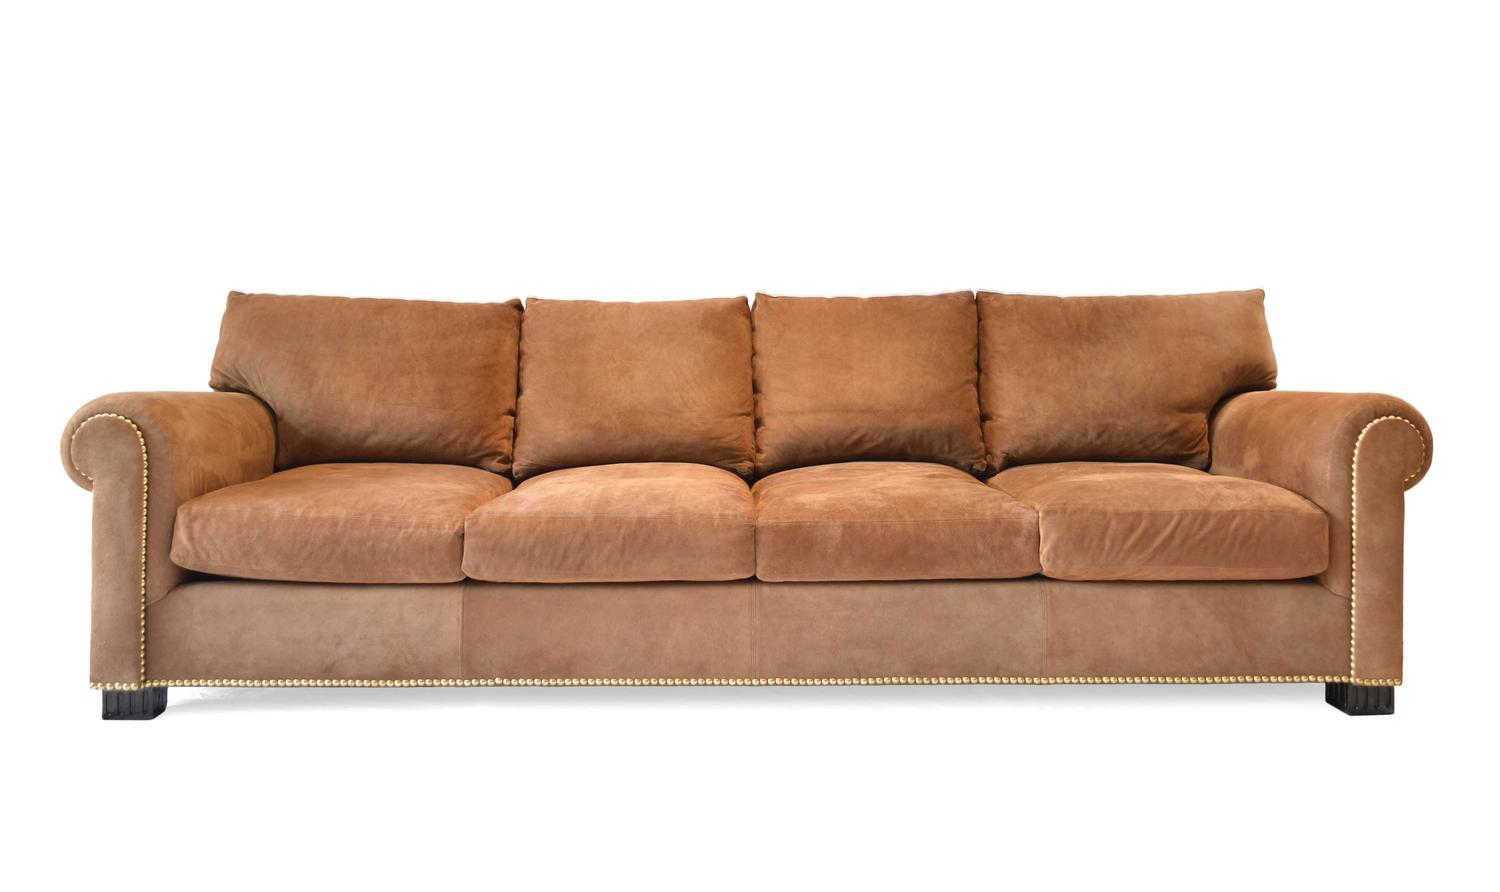 Suede Rolled Arm Sofa By Ralph Lauren For Sale At 1stdibs